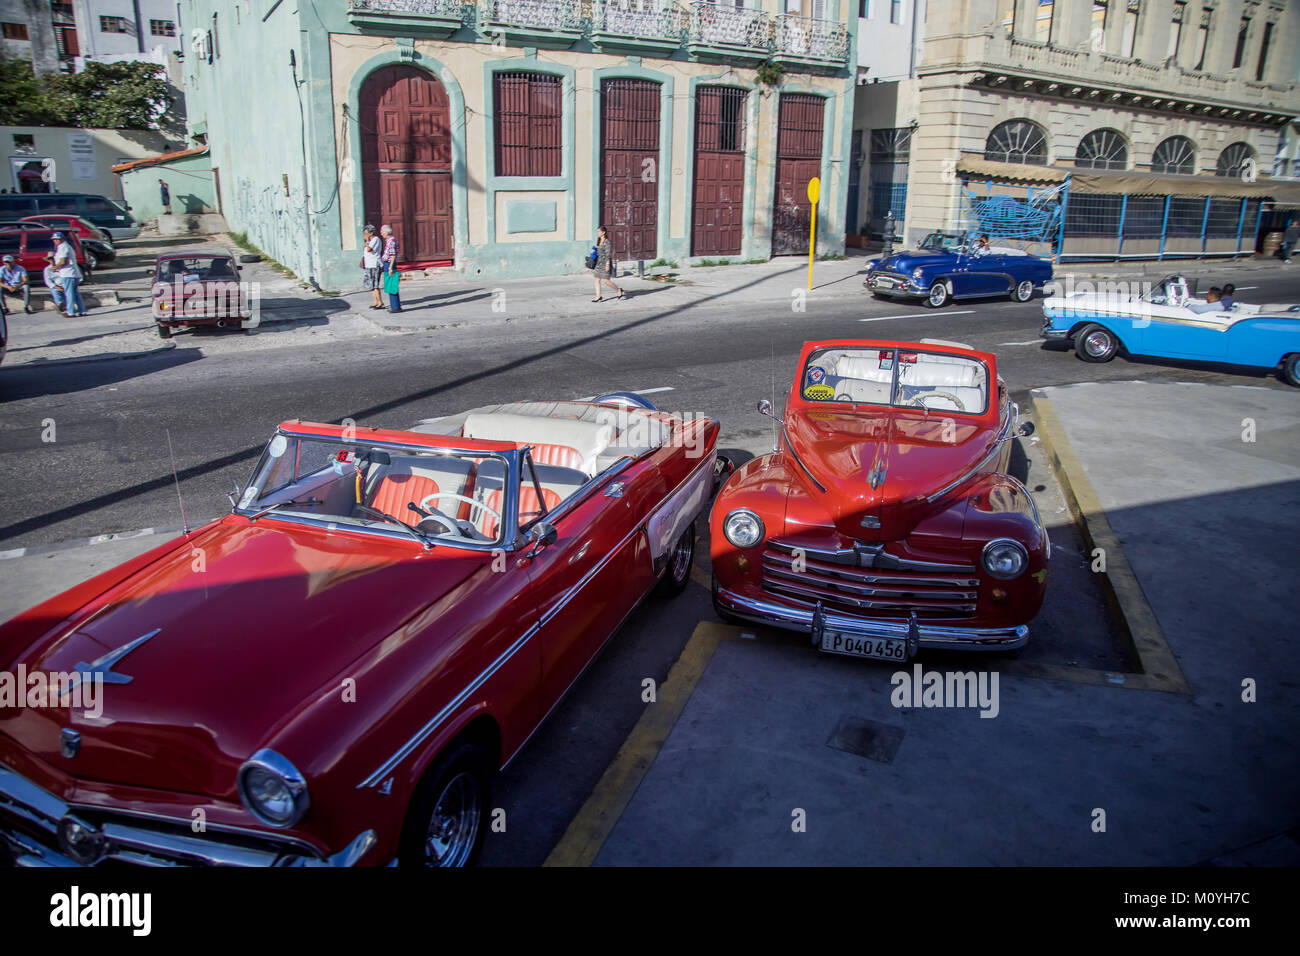 Red Convertibles - Stock Image